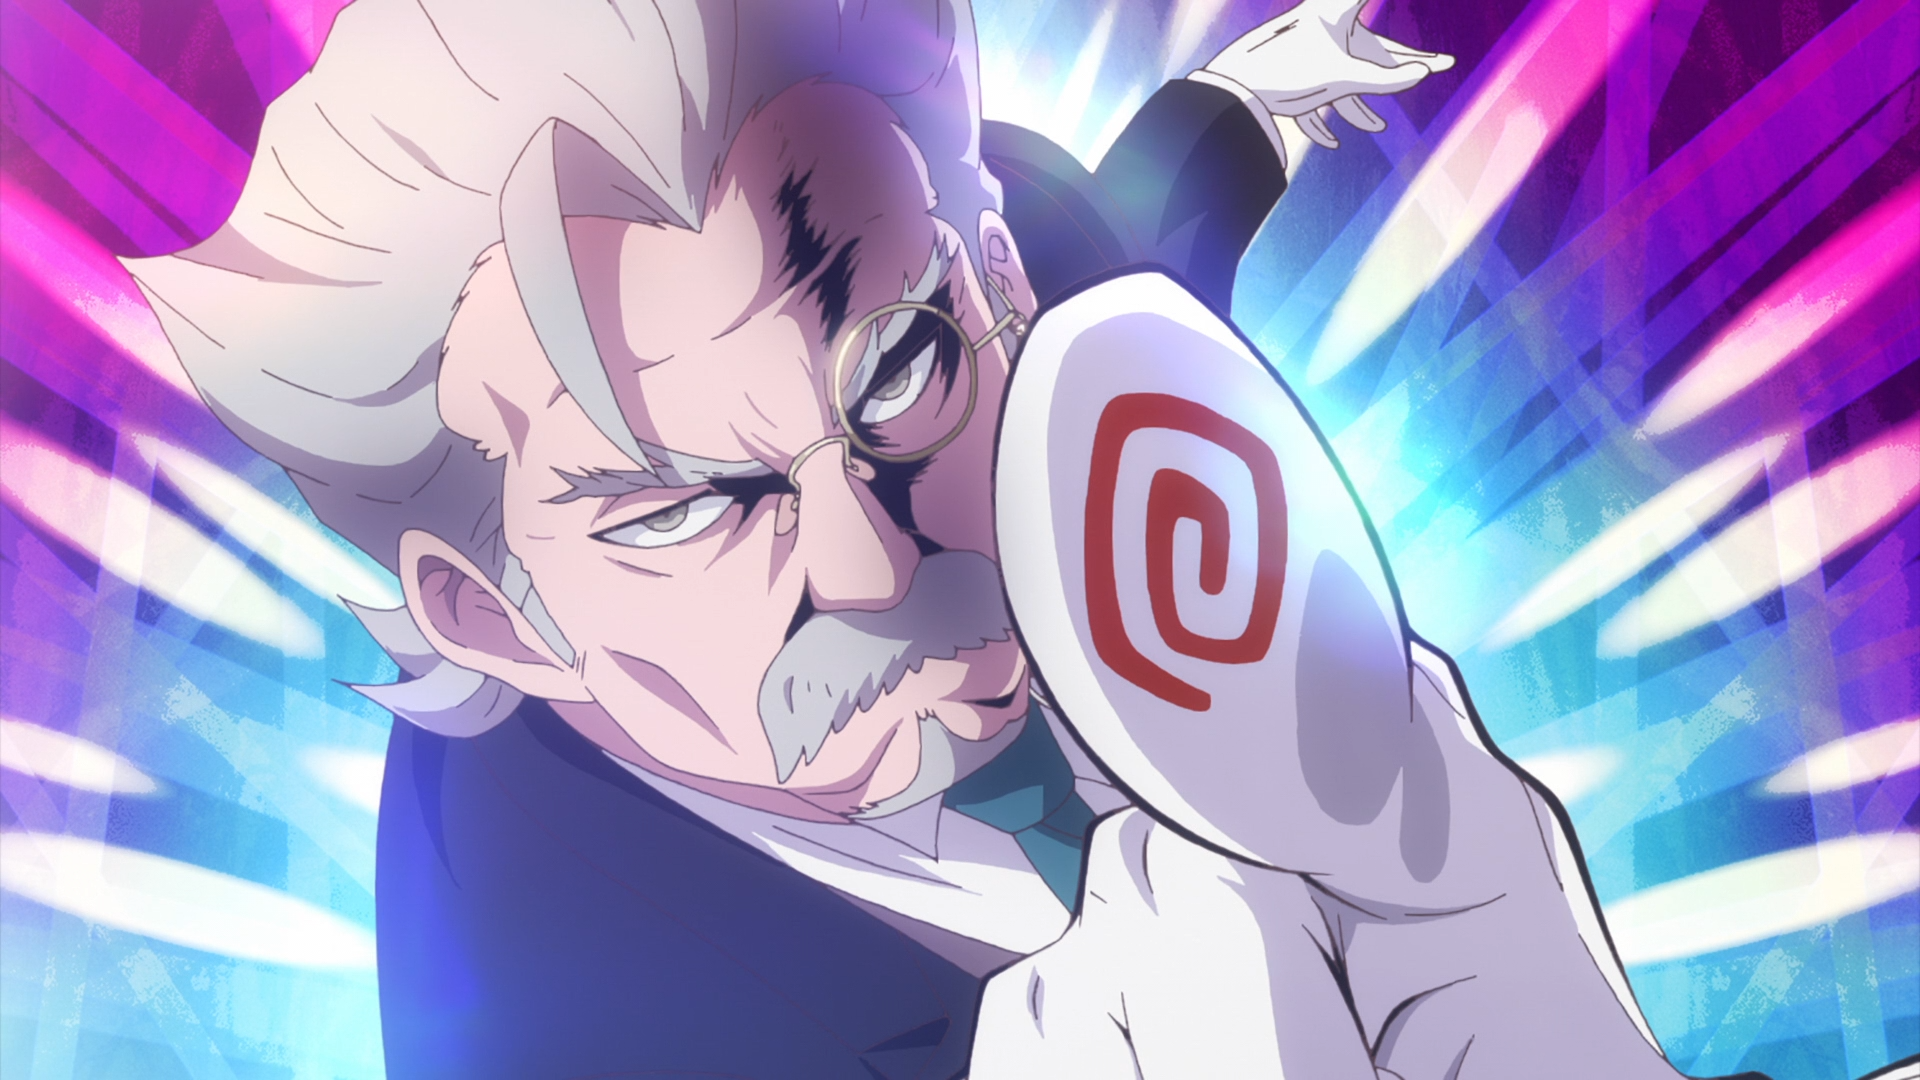 Sebas the Butler points dramatically in a scene from the 2017 Anime-Gataris TV anime.